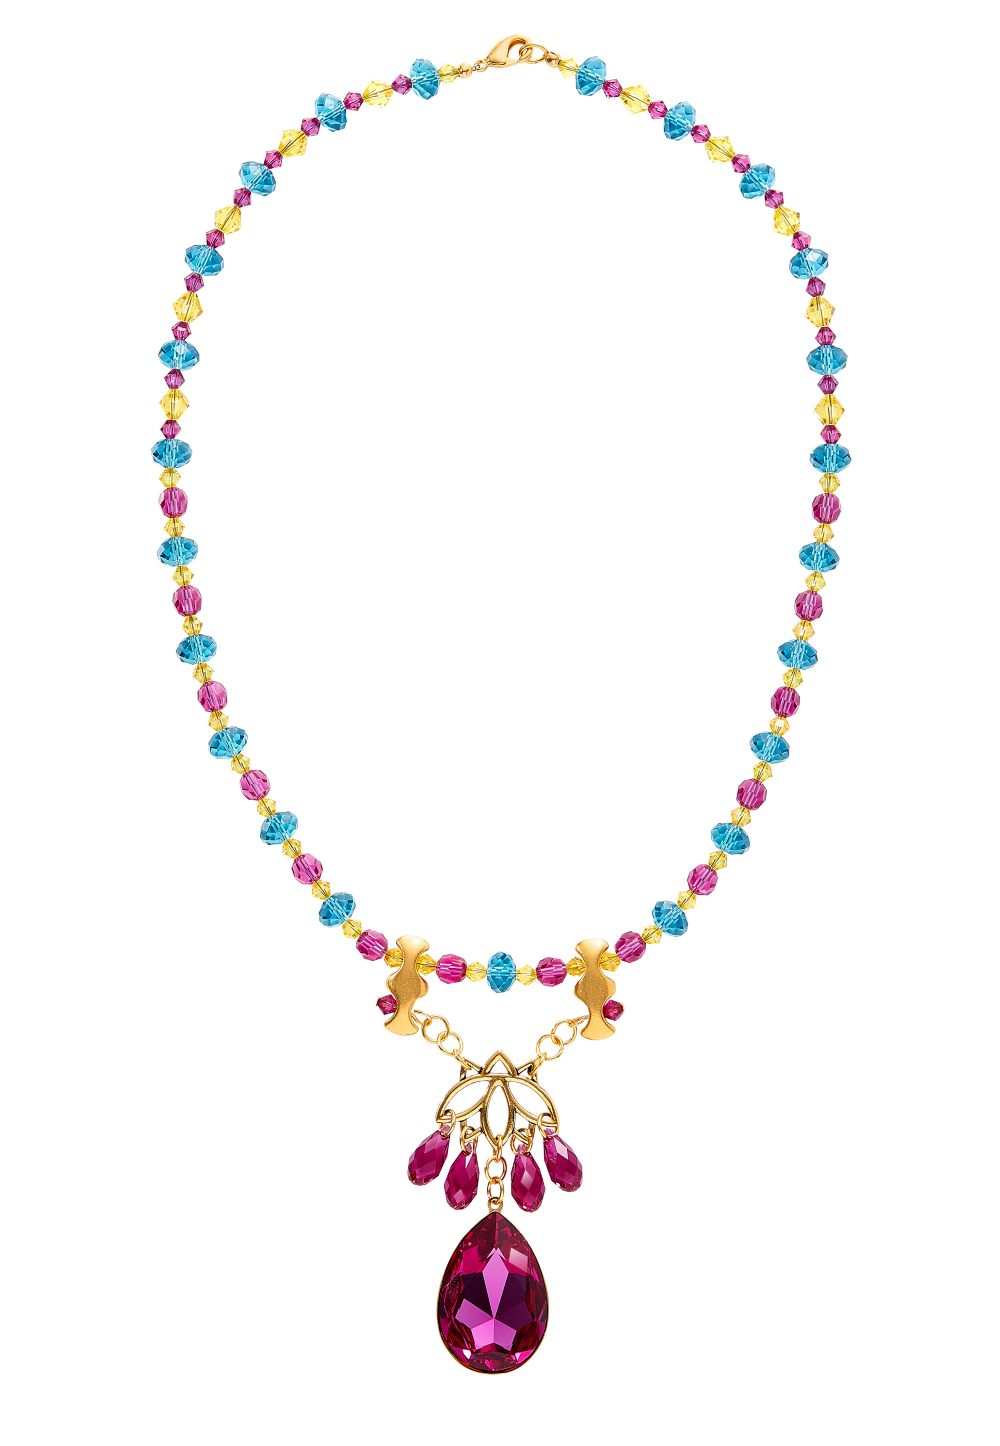 indianecklace-full2.png